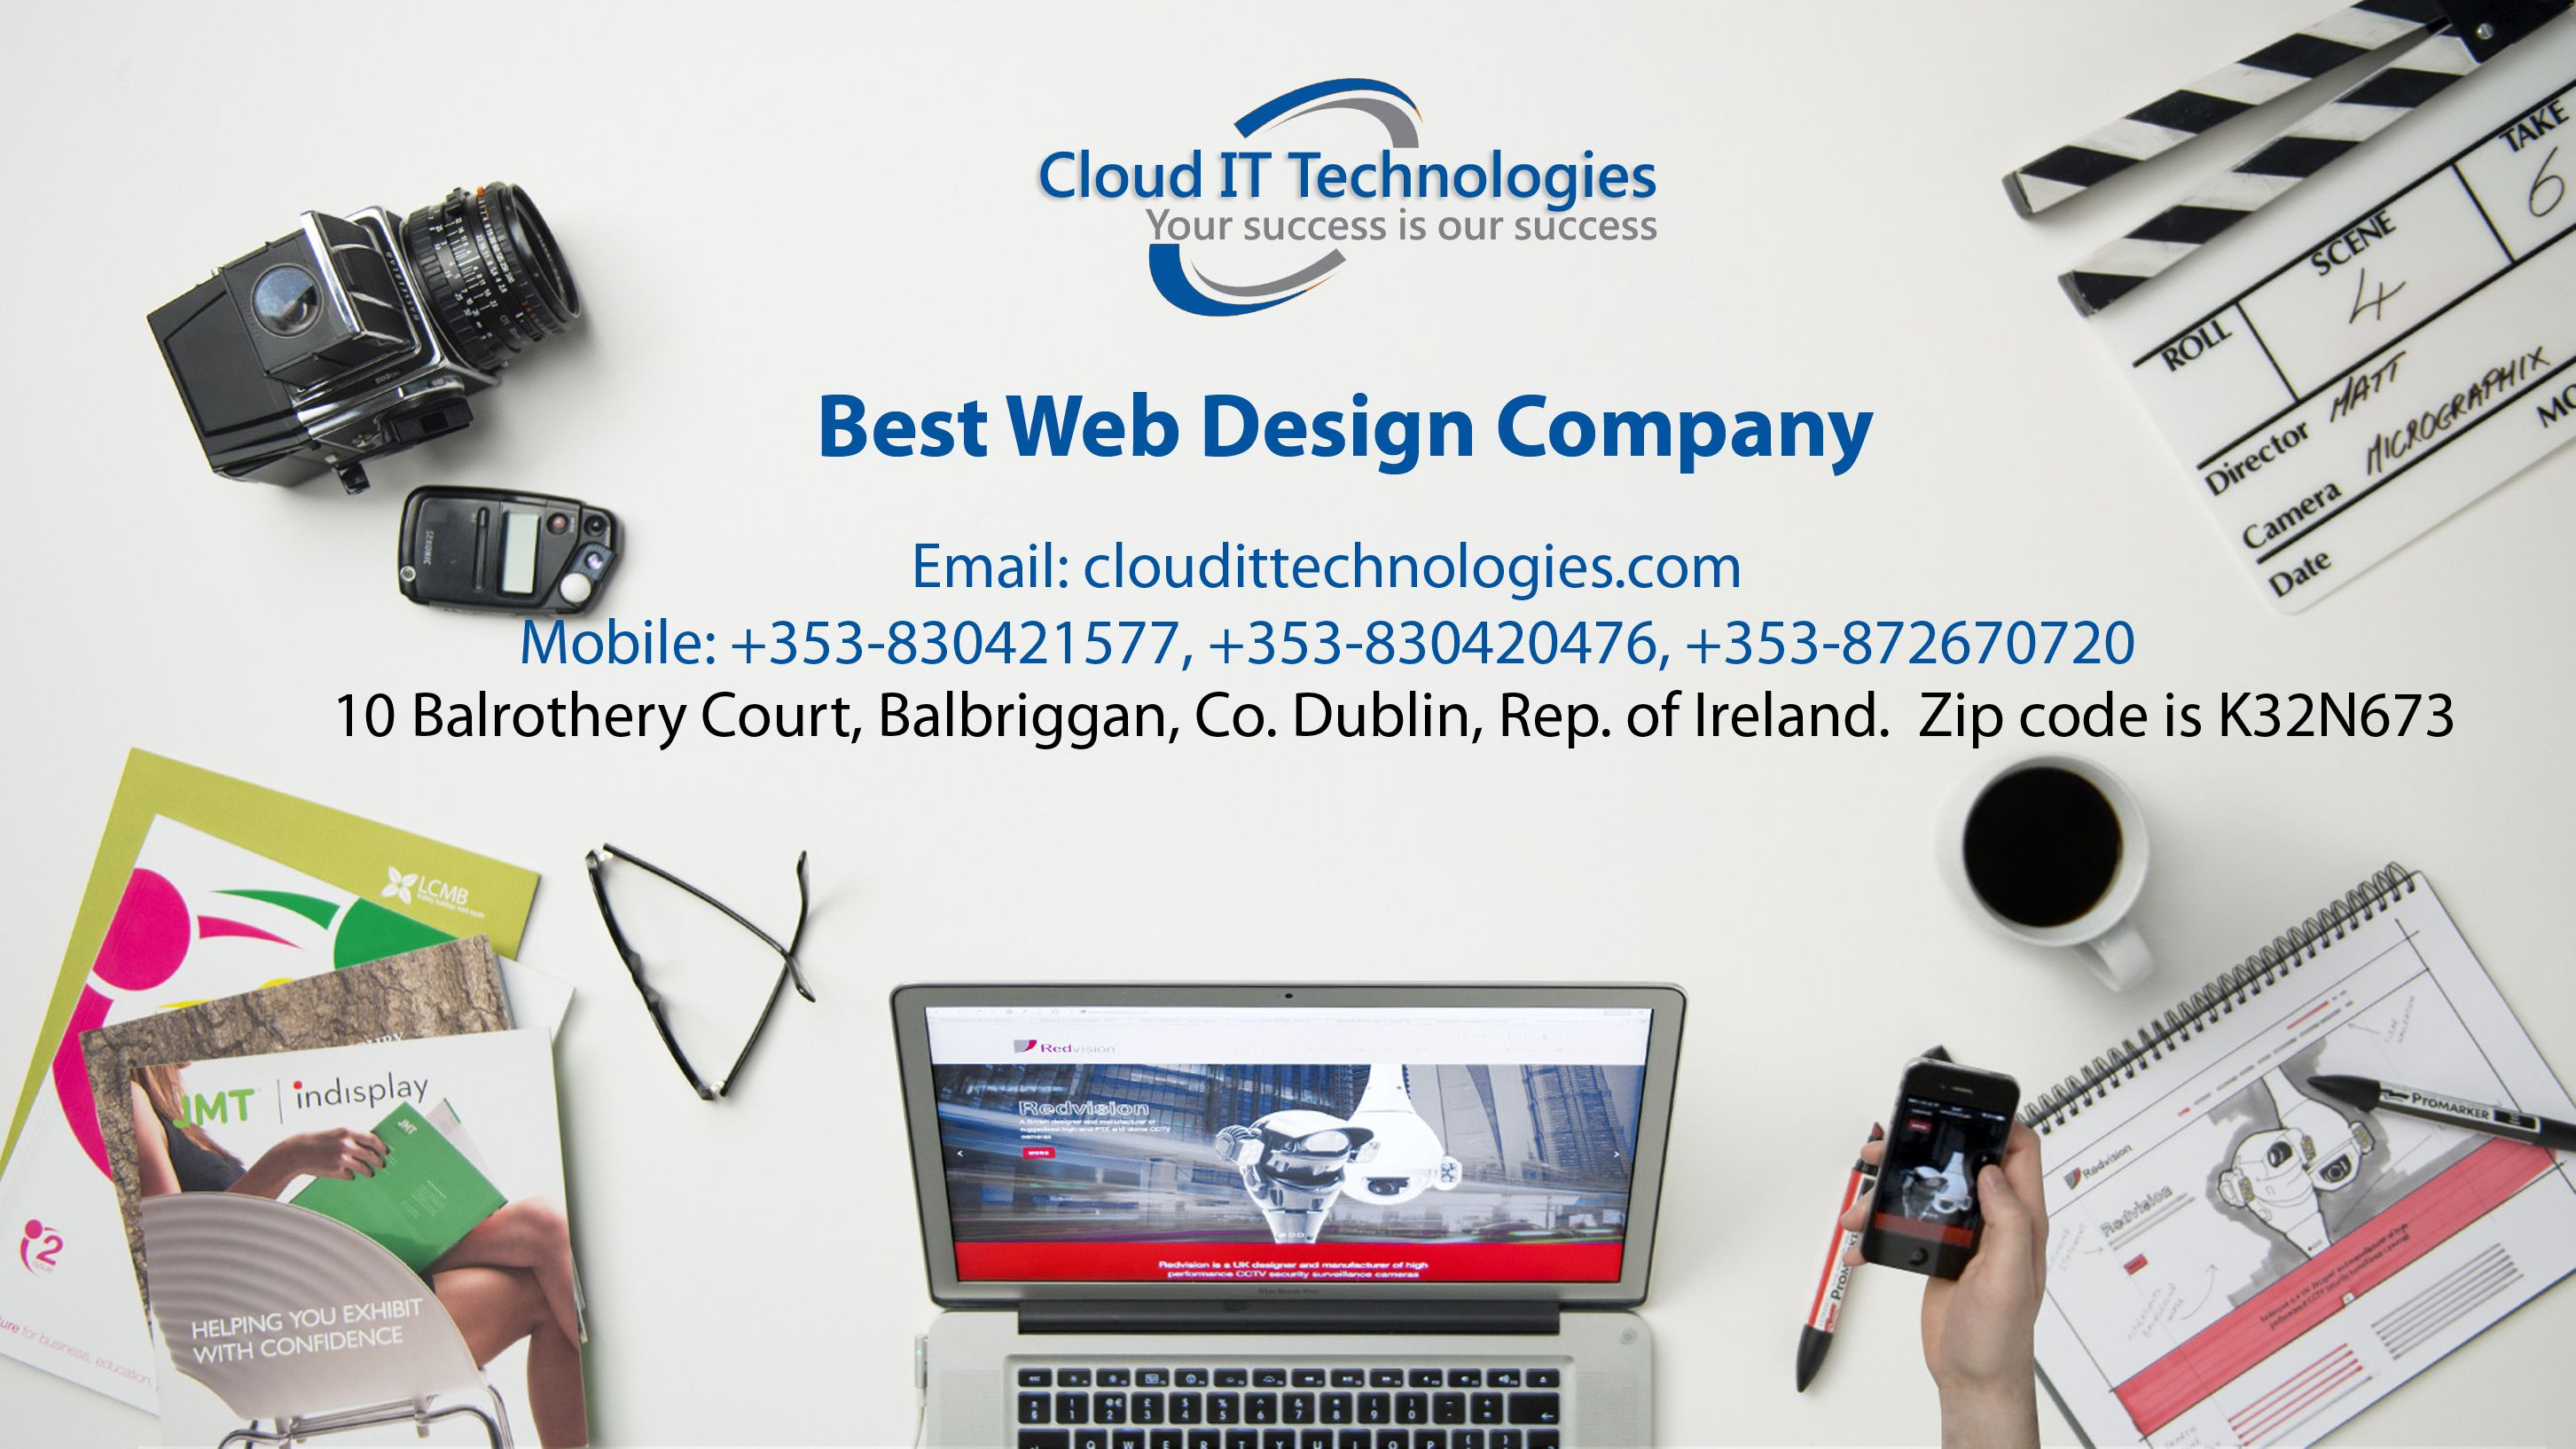 Best Web Design Company In Dublin Refers To The Method Of Building A Website Web Design Web Design Company Best Web Design